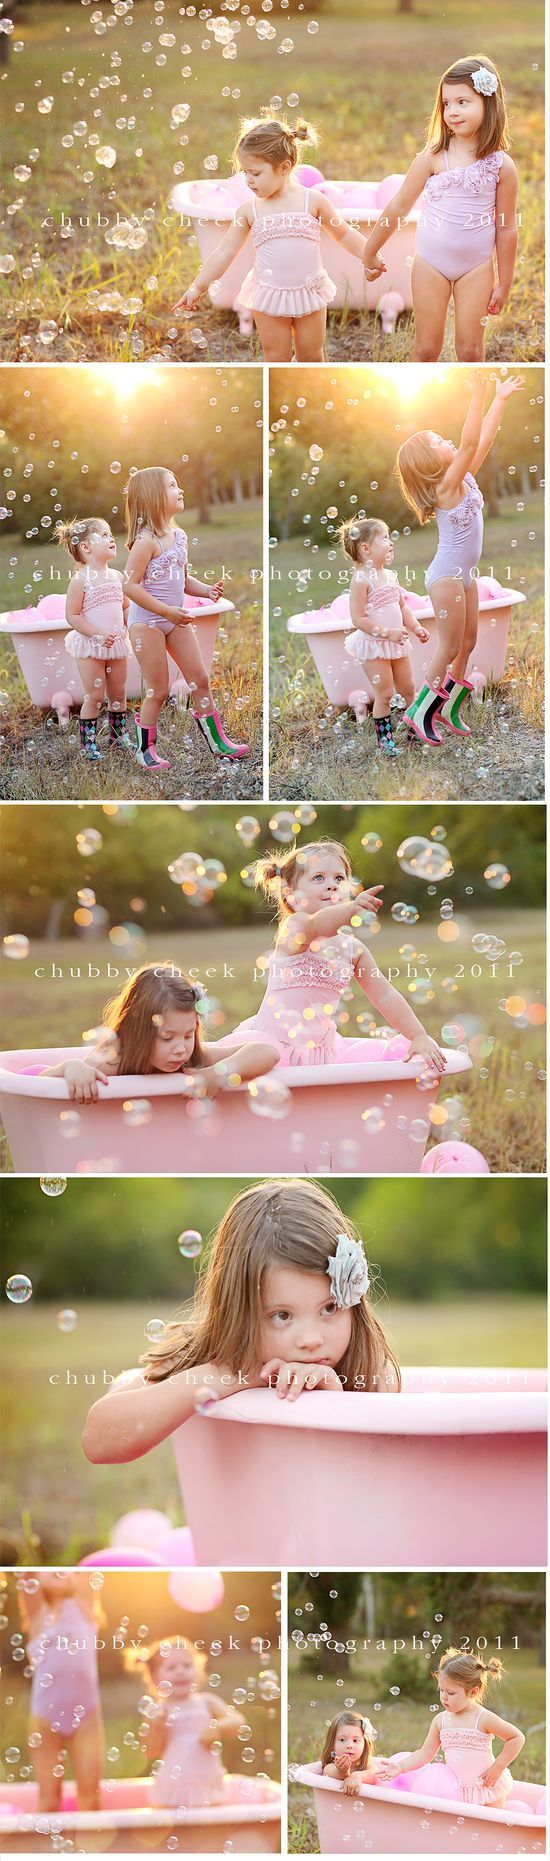 beautiful sunlight, bubbles and a pink tub.   http://coolphotoshoots.blogspot.com